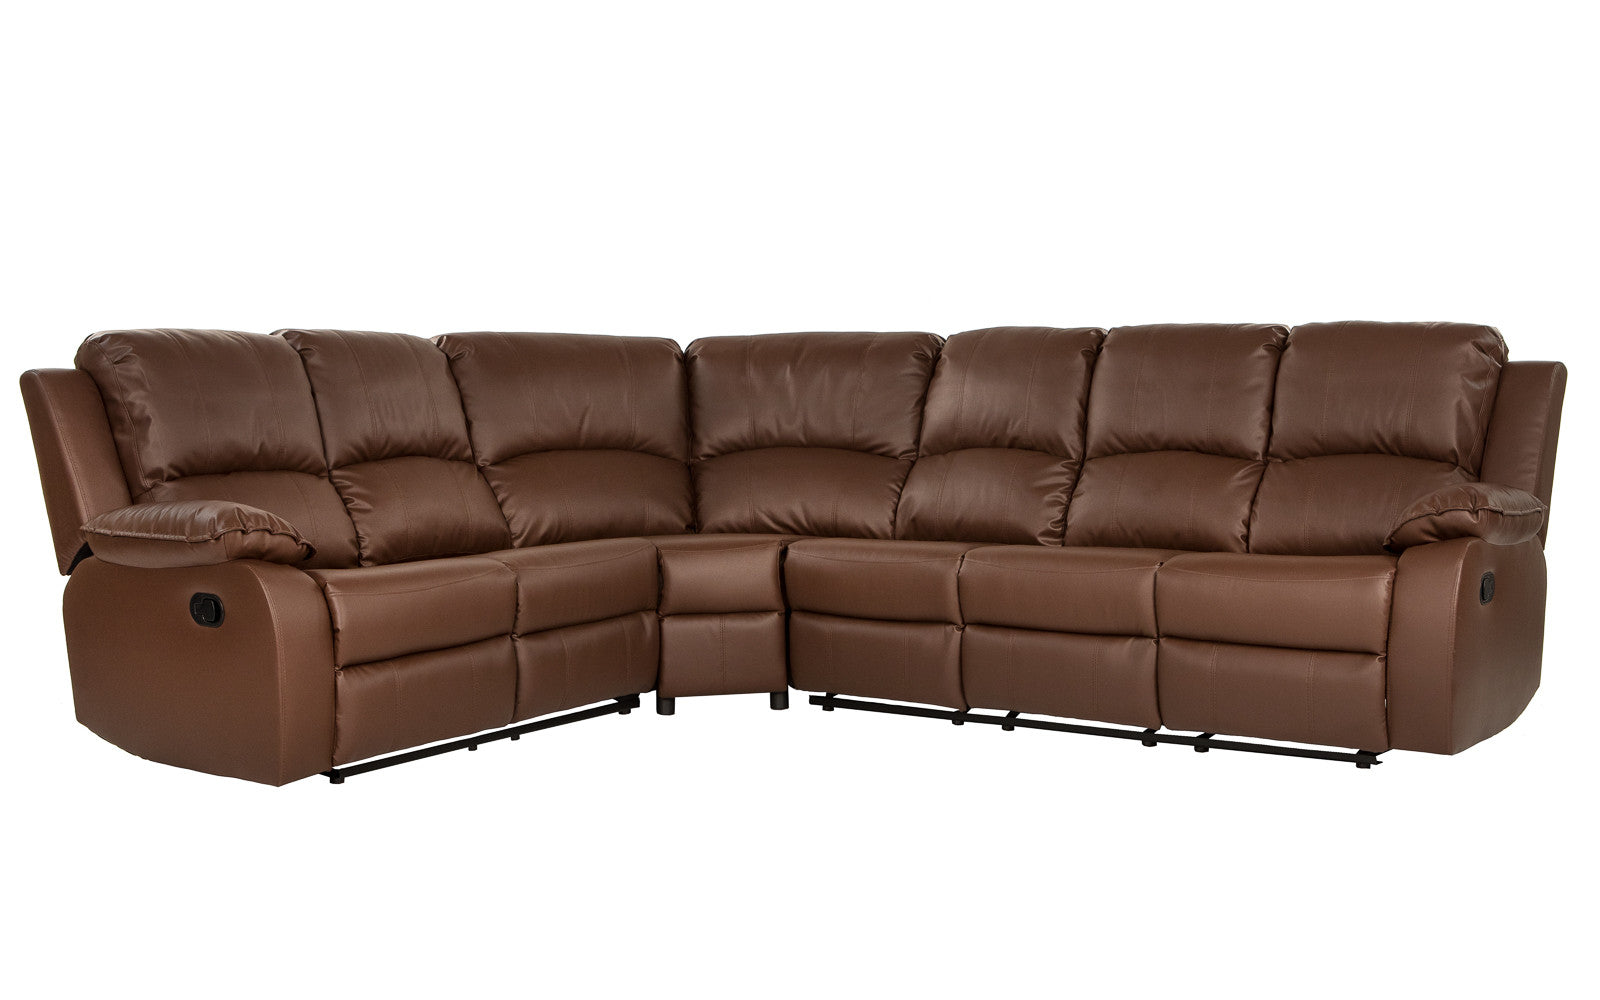 Bond Classic 6-Seat Leather Reclining Sectional Sofa ...